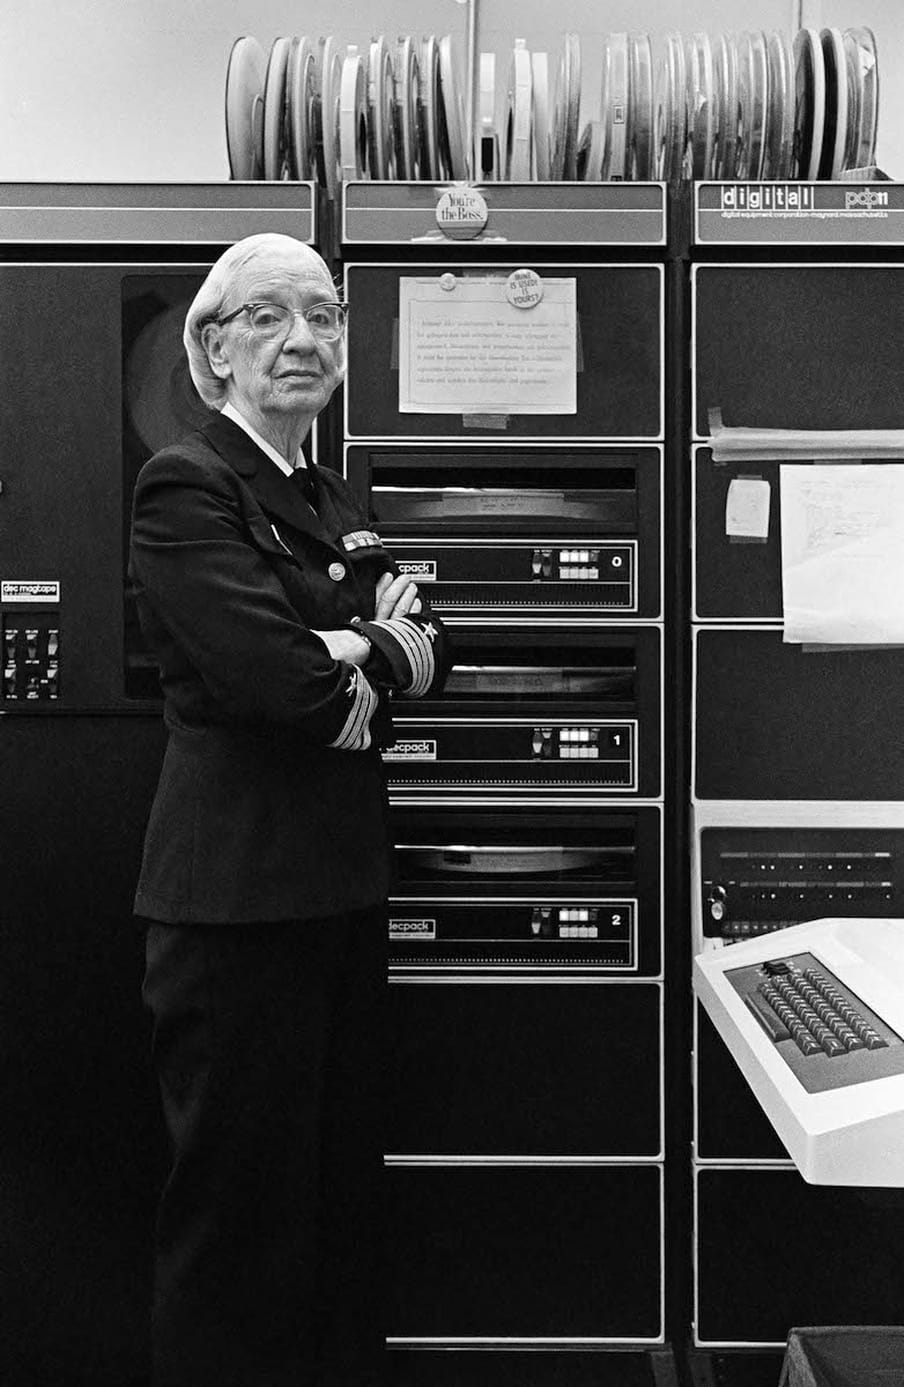 Black and white photograph of a woman with glasses wearing a US Navy suit, standing next to a computer.